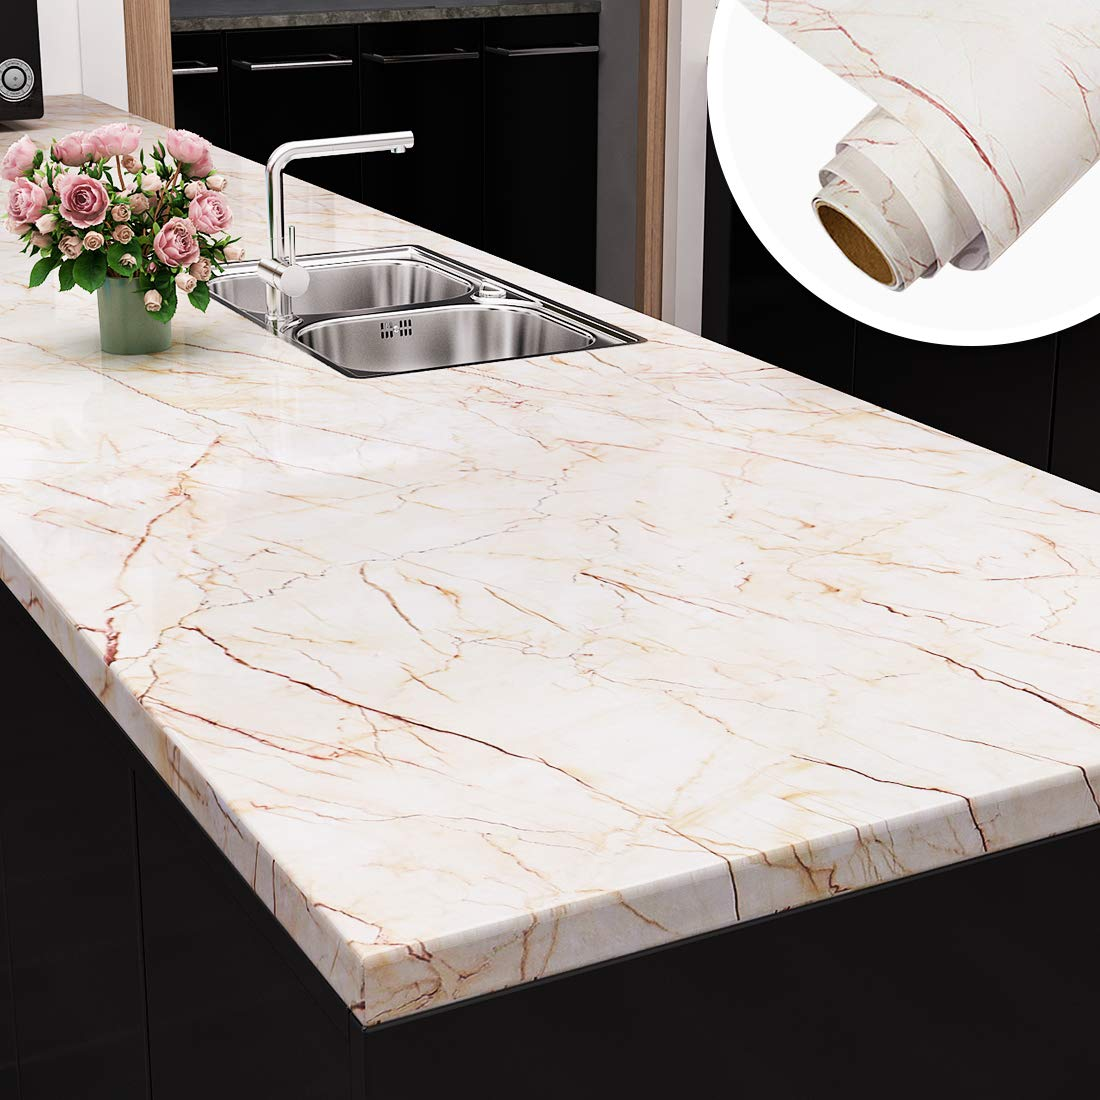 Yenhome Large Size Removable Marble Contact Paper For Countertops Peel And Stick Wallpaper For Kitchen Cabinets Bathroom Wall Decor Wallpaper Stick And Peel 24 X 118 Roll Amazon Com